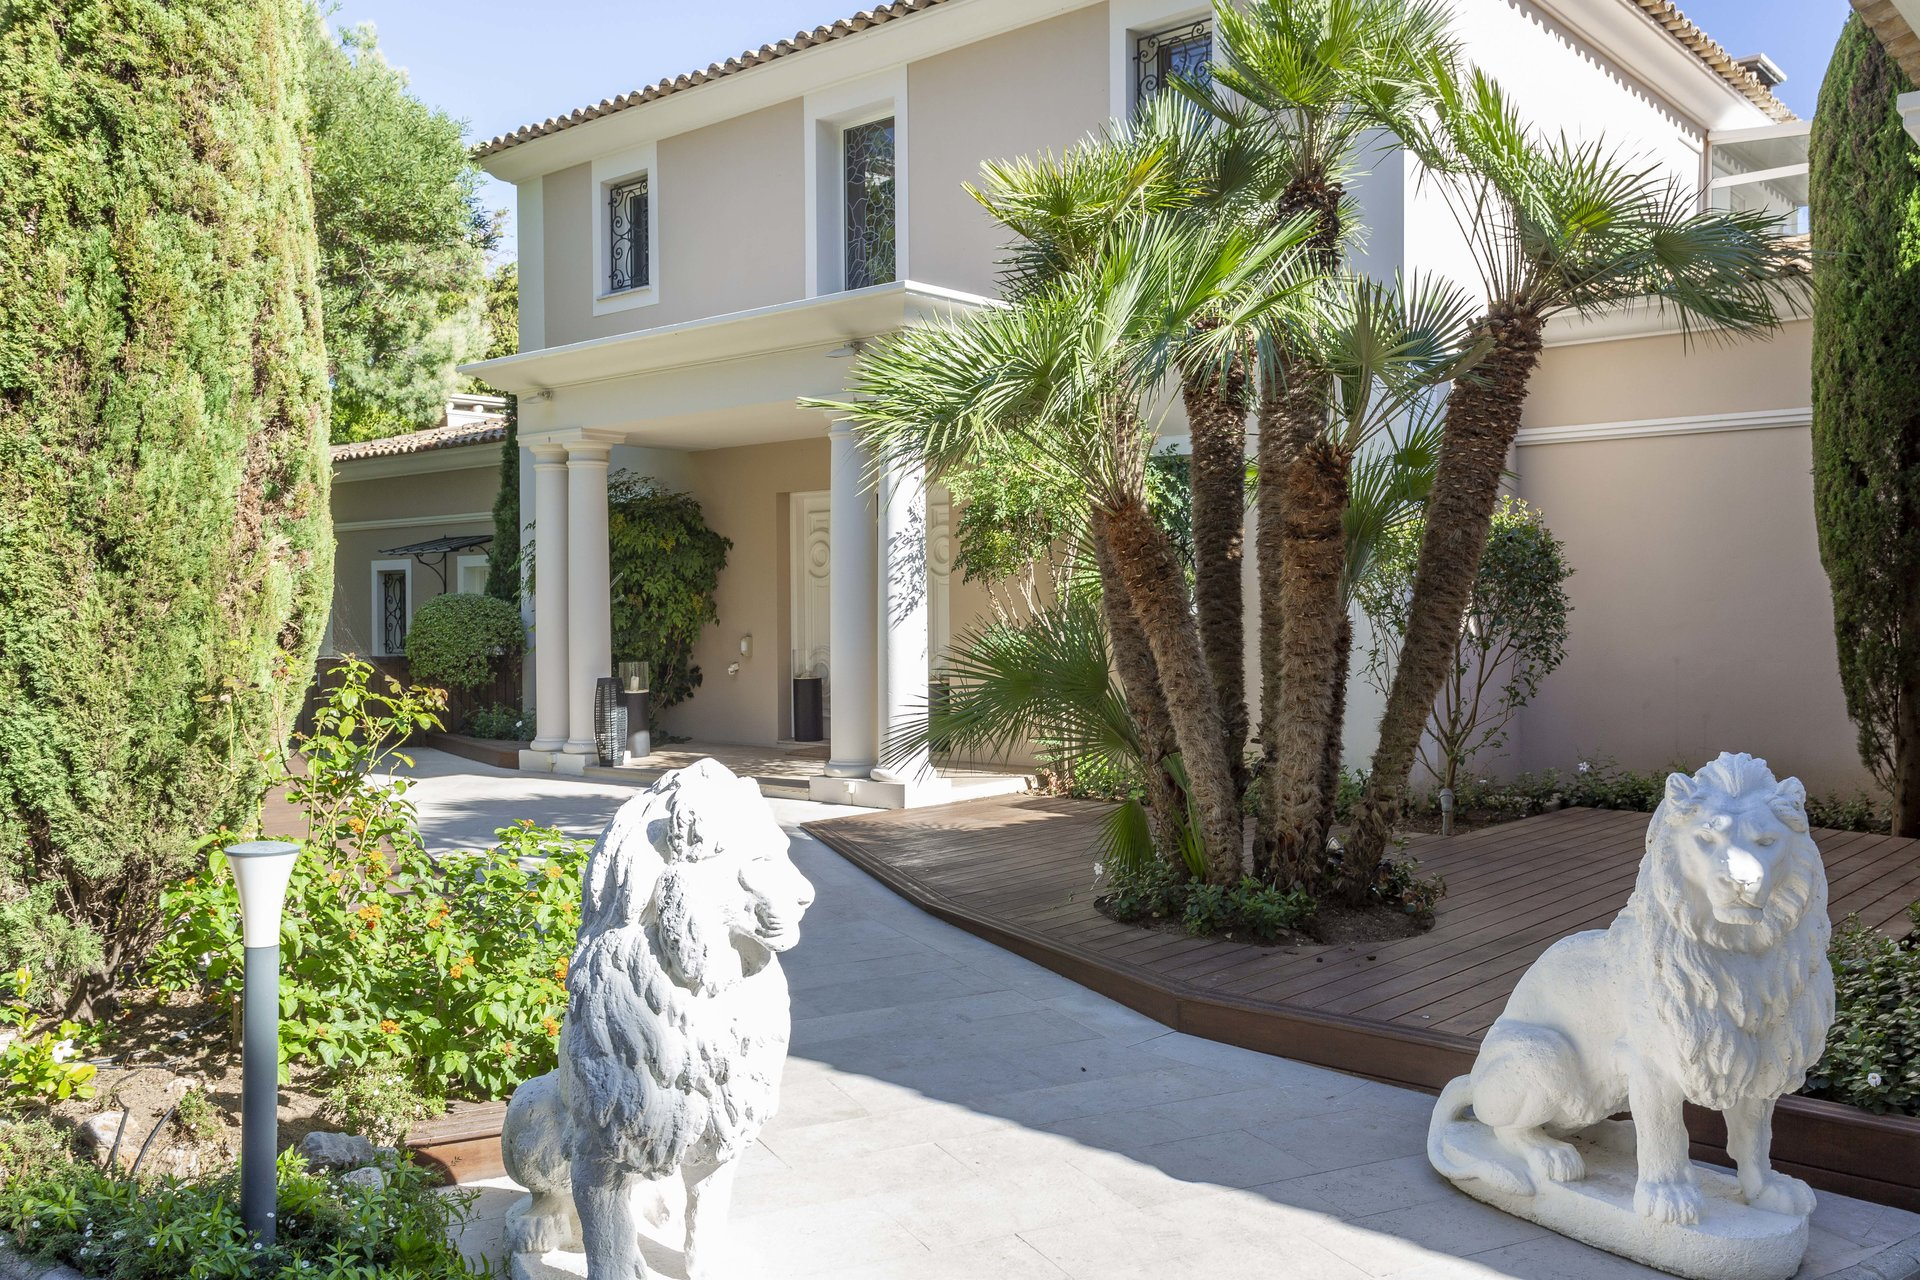 SUPER CANNES - OUTSTANDING FLORENTINE STYLE VILLA